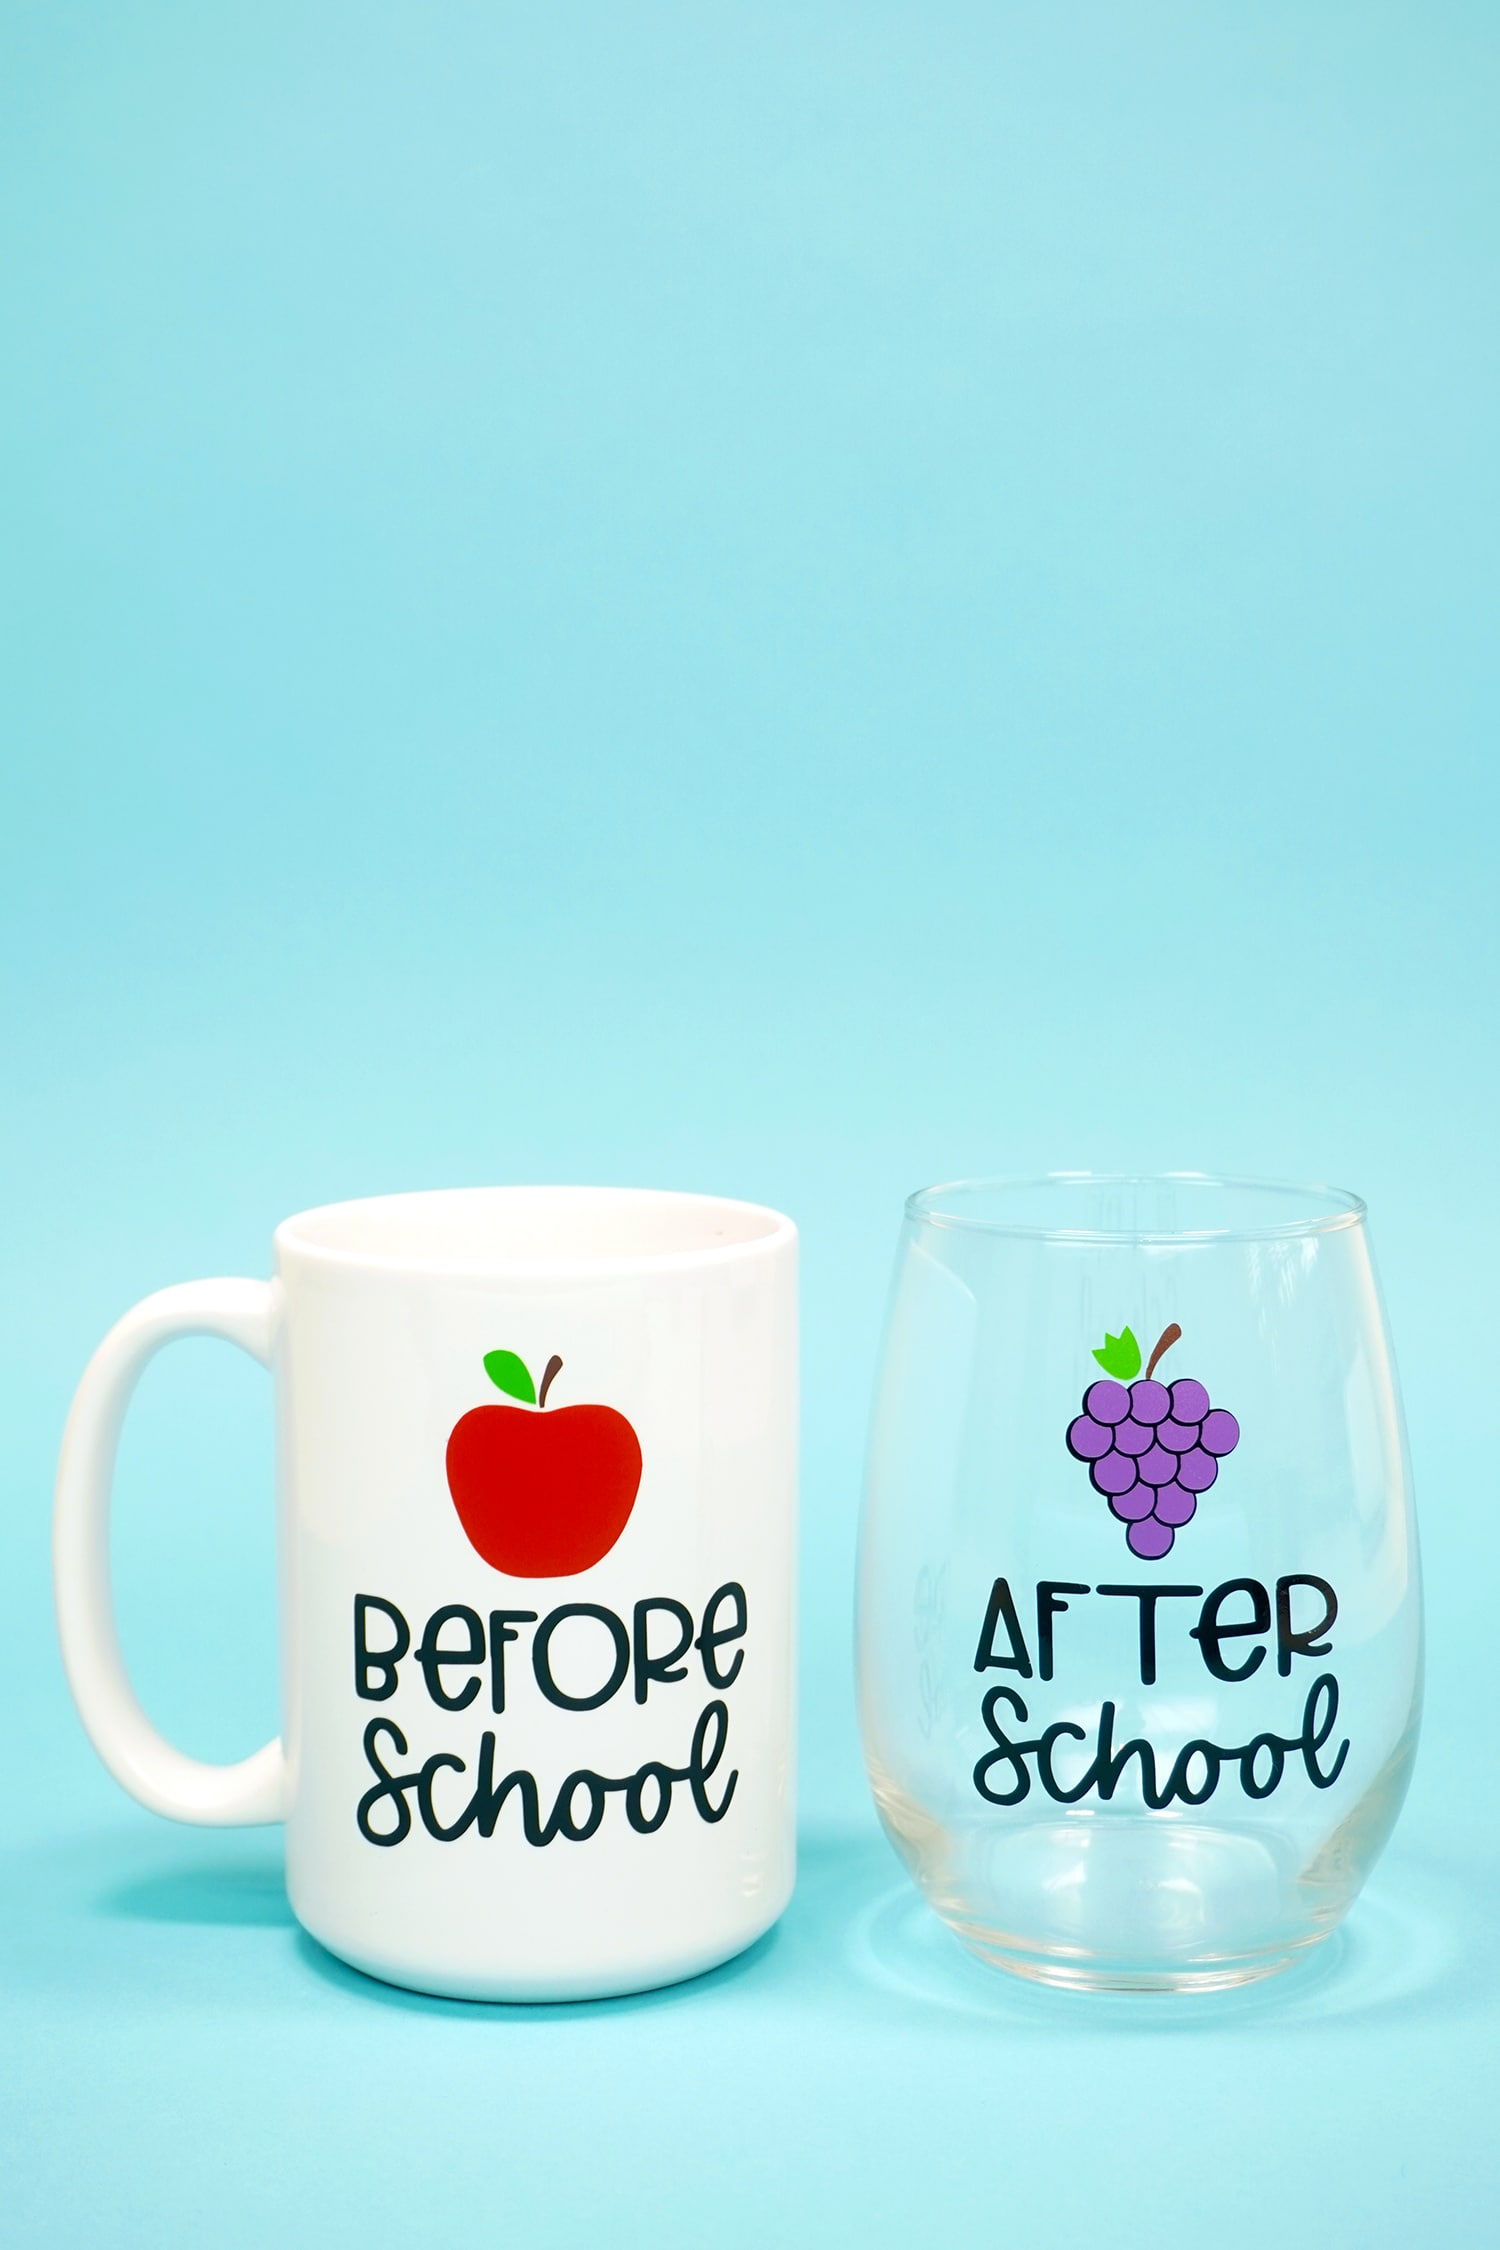 """Before School"" white coffee mug and ""After School"" stemless wine glass on light blue background"